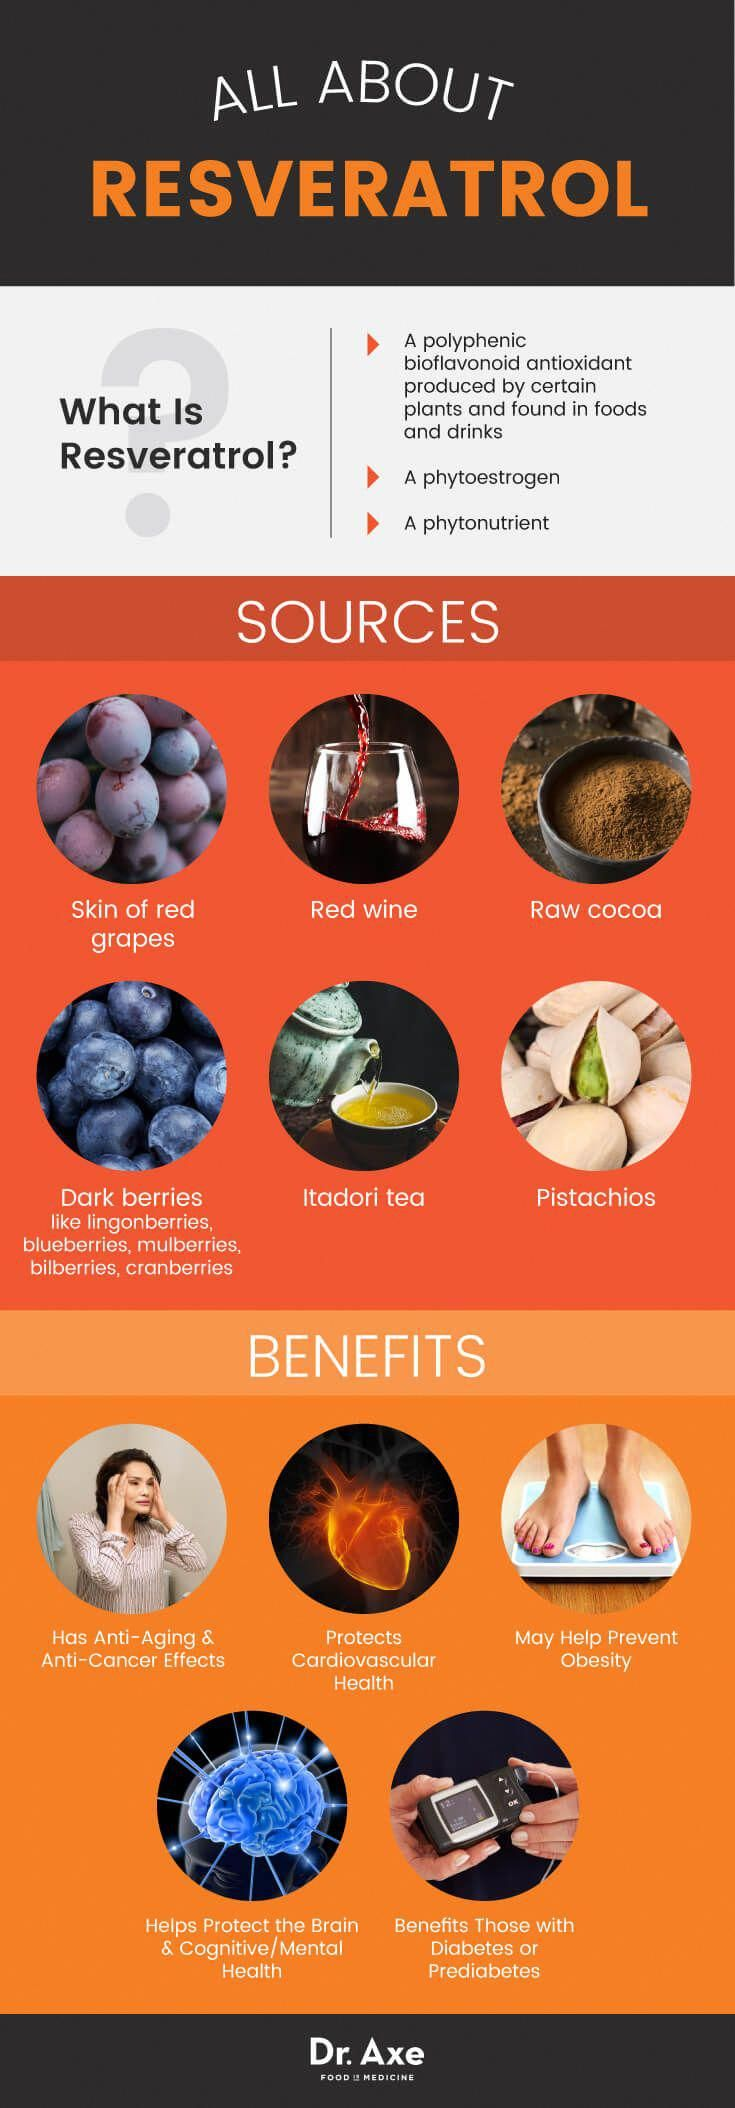 All About Resveratrol Red Wine And Cocoa Are Two Of The Best Sources Of Resveratrol Unfortunately A Nutricion Ortomolecular Resveratrol Beneficios Nutricion